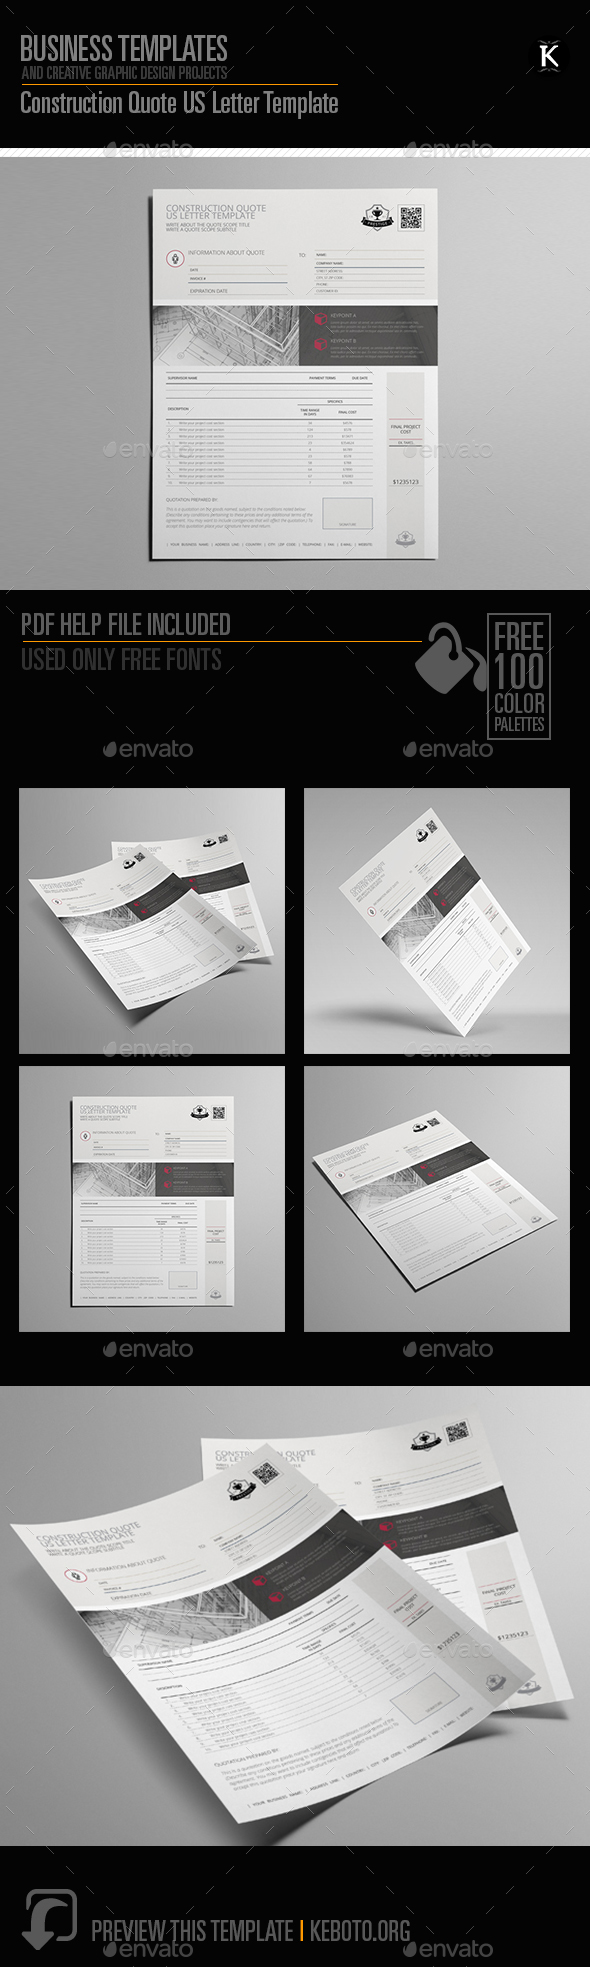 Quote Template Graphics, Designs & Templates from GraphicRiver